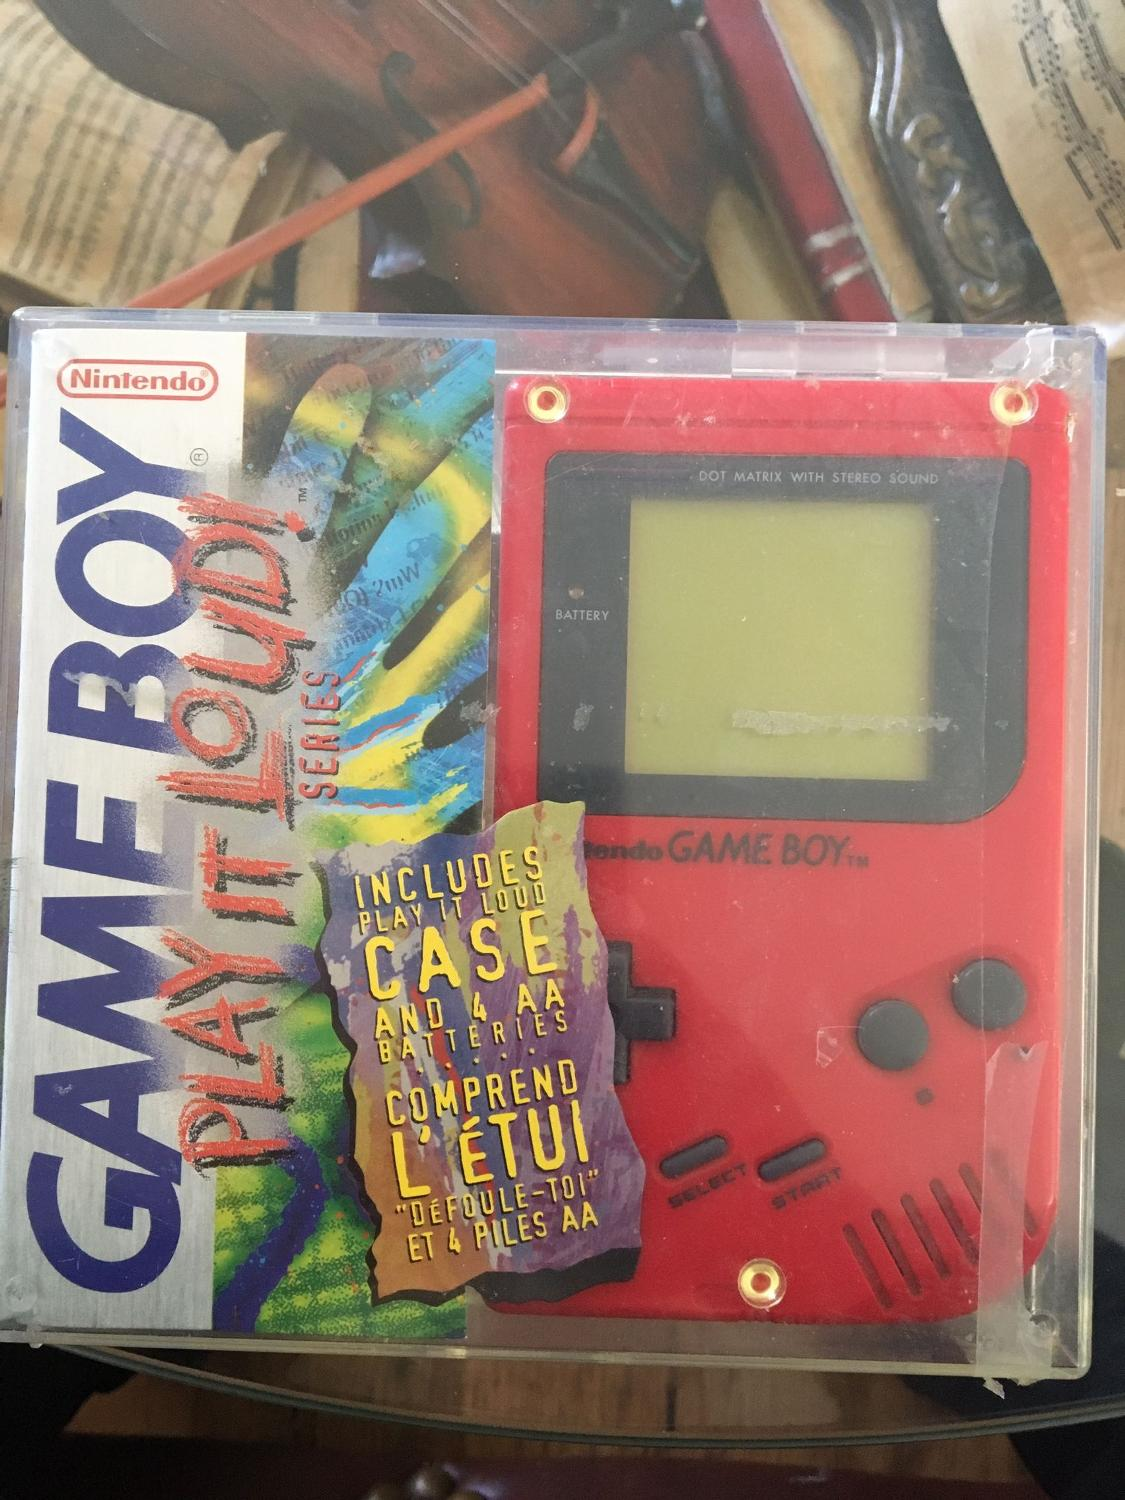 Best Game Boy Play It Loud Red Original Box for sale in Vaudreuil, Quebec  for 2019 ff653f80ed7